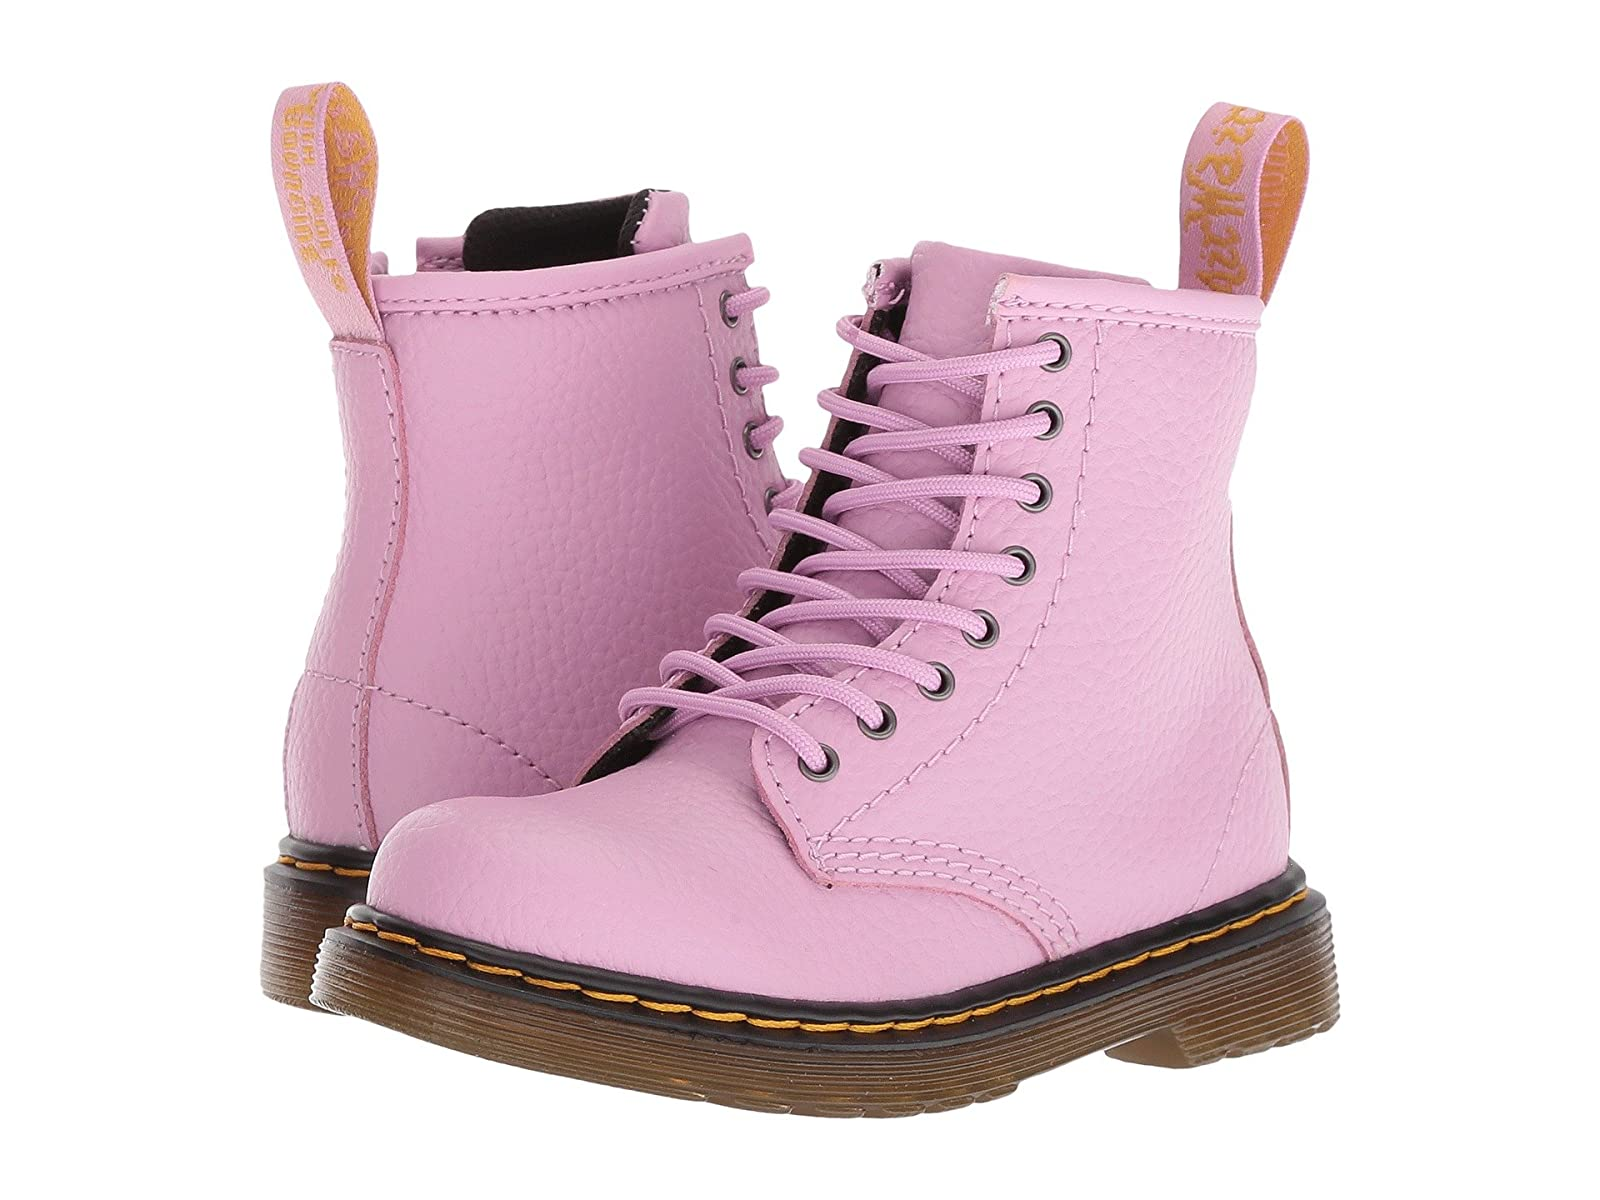 Dr. Martens Kid's Collection Brooklee PBL (Toddler)Cheap and distinctive eye-catching shoes